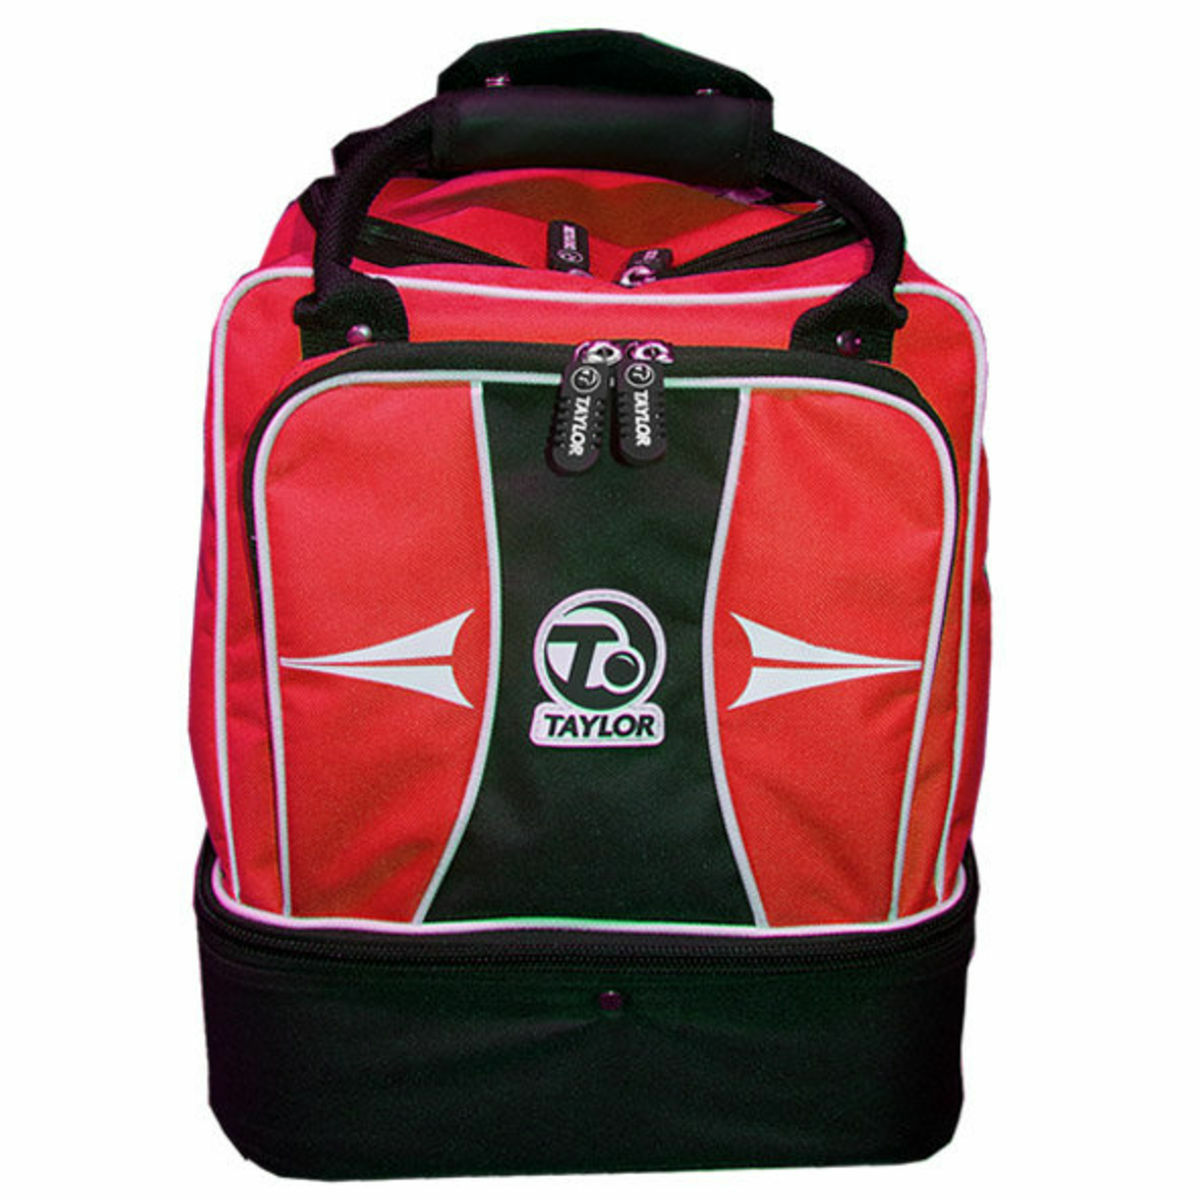 Taylor 4 Bowl Mini Sports Bowls Bag - Ideal for Crown, Lawn and Indoor Bowls